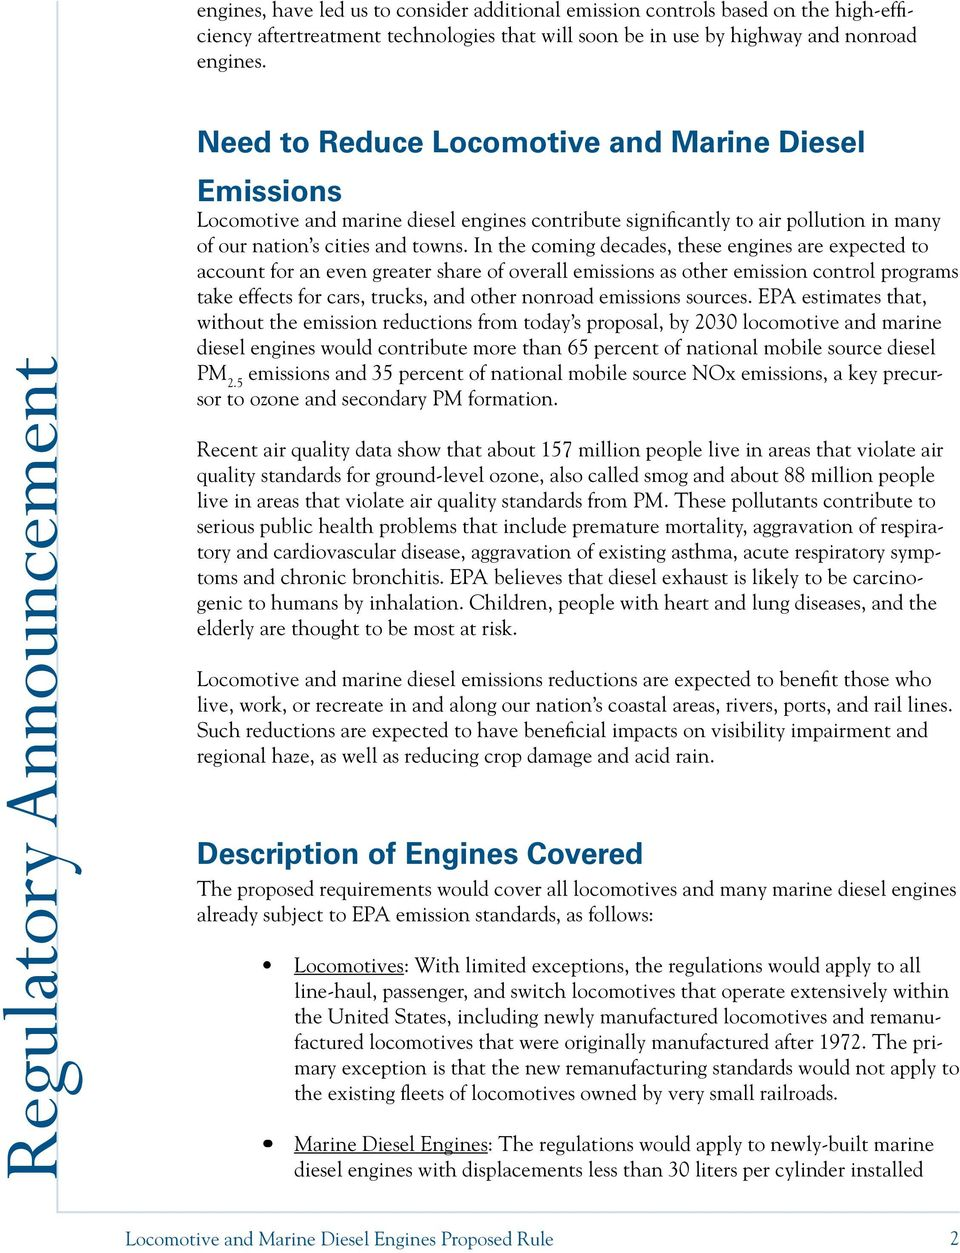 In the coming decades, these engines are expected to account for an even greater share of overall emissions as other emission control programs take effects for cars, trucks, and other nonroad